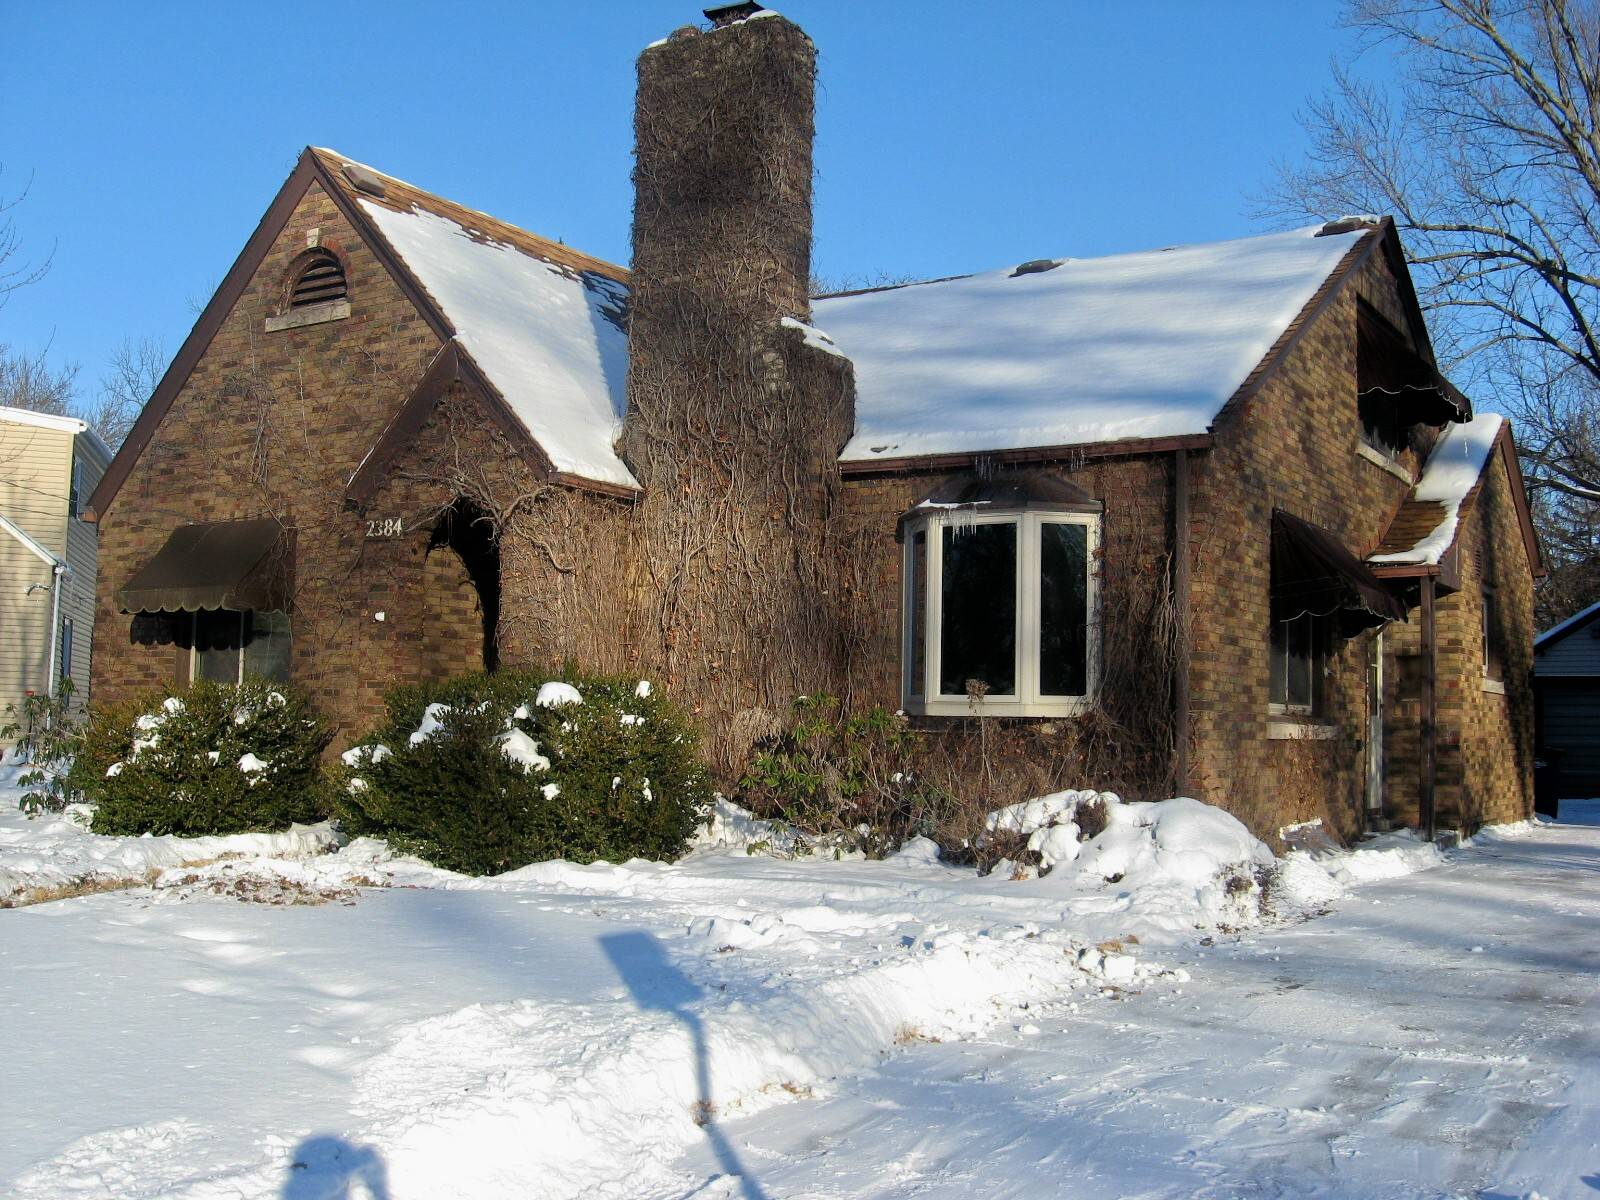 2384 24th st moline illinois 4 bedrooms 3 full bat for Garage molines peymeinade